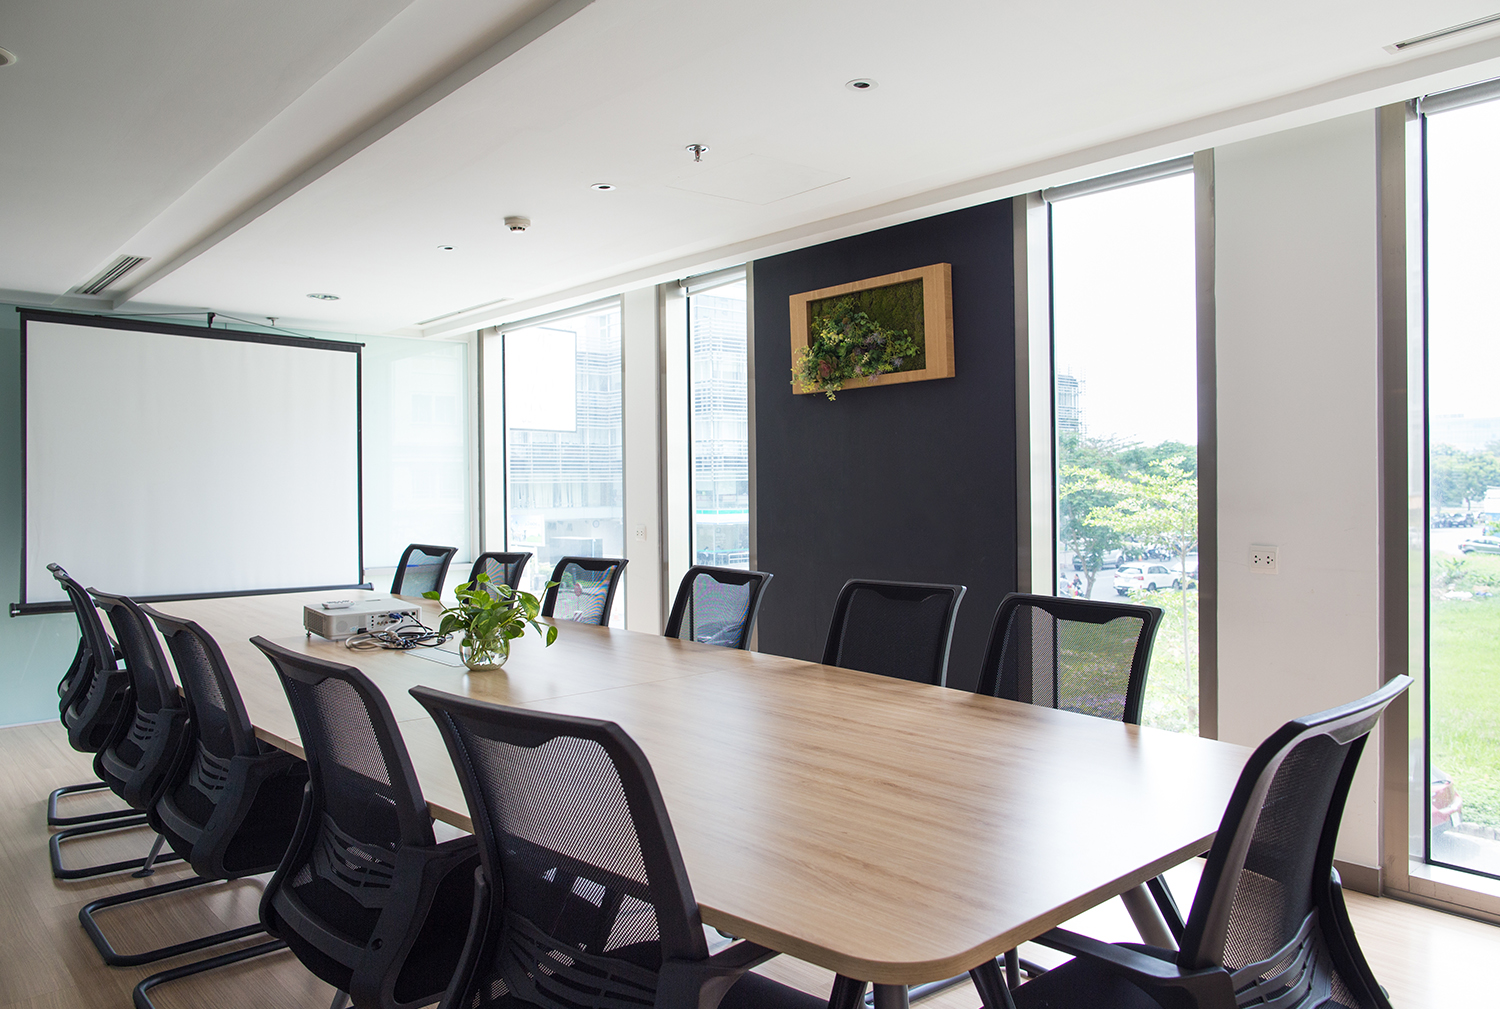 Office suite deep cleaning service